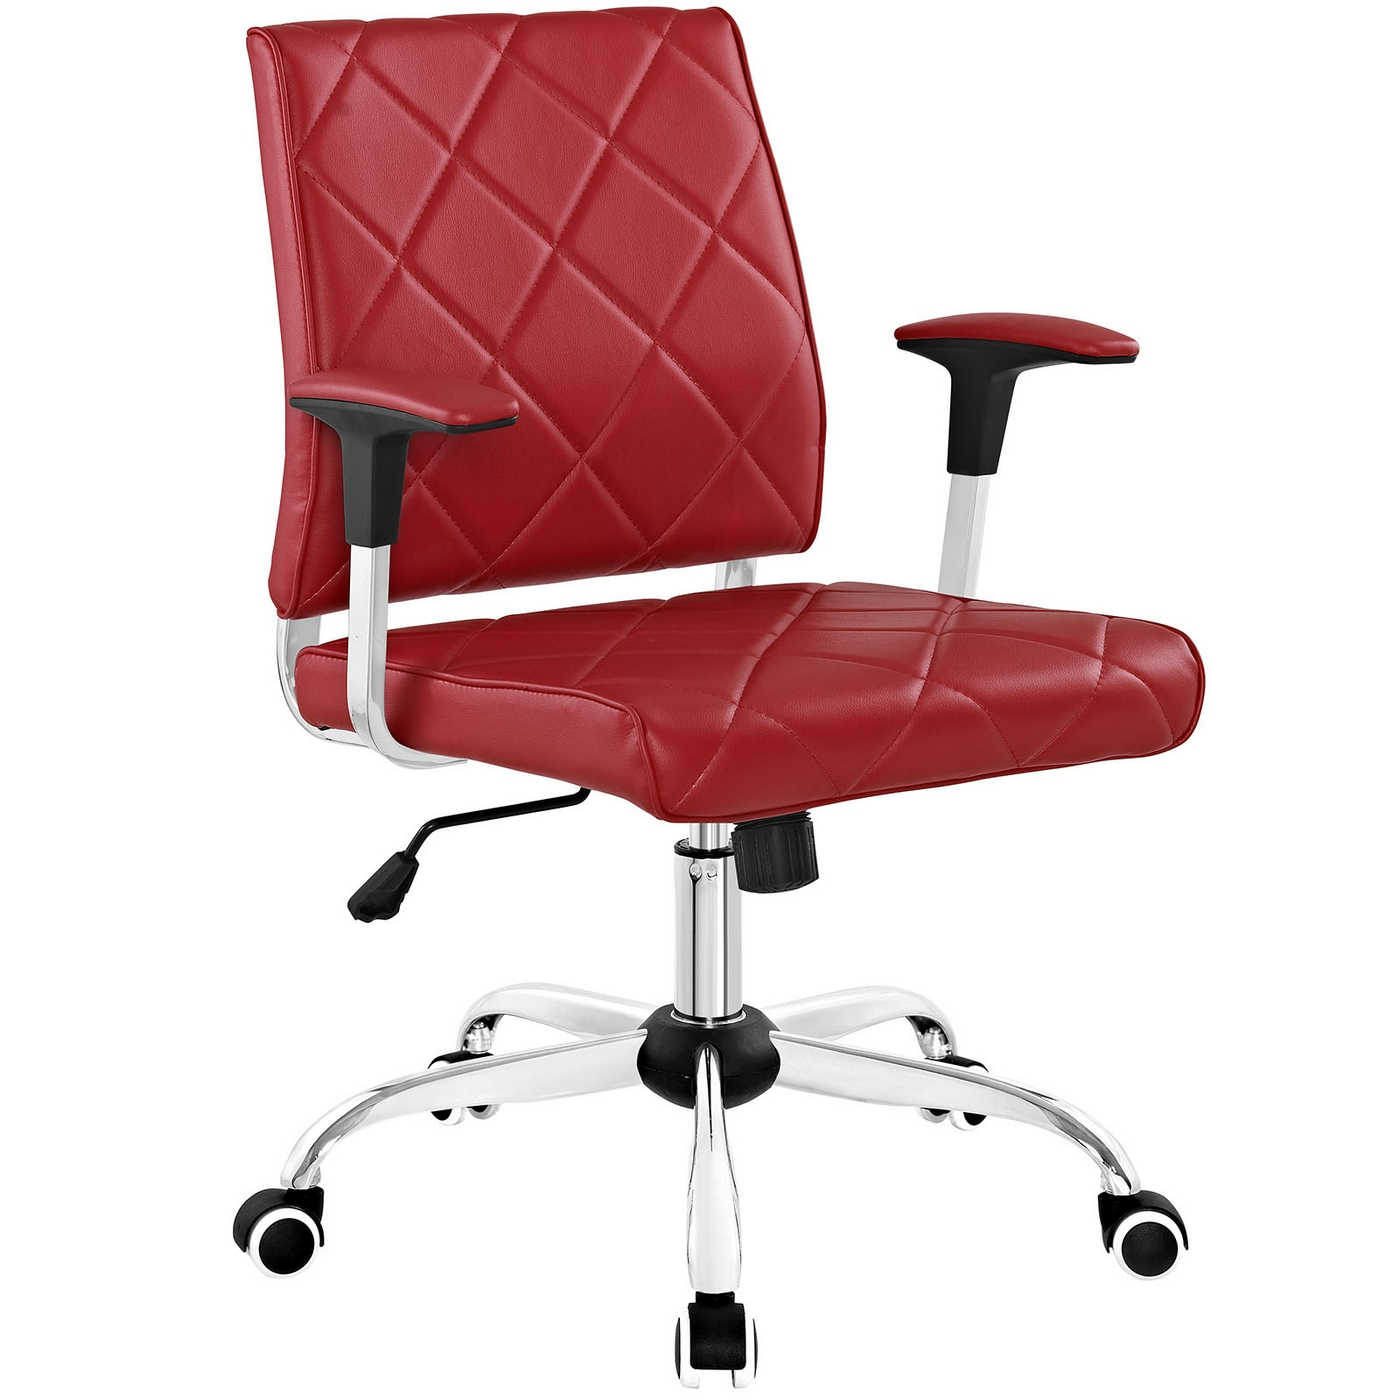 lattice modern patterned vinyl office chair with chrome base red